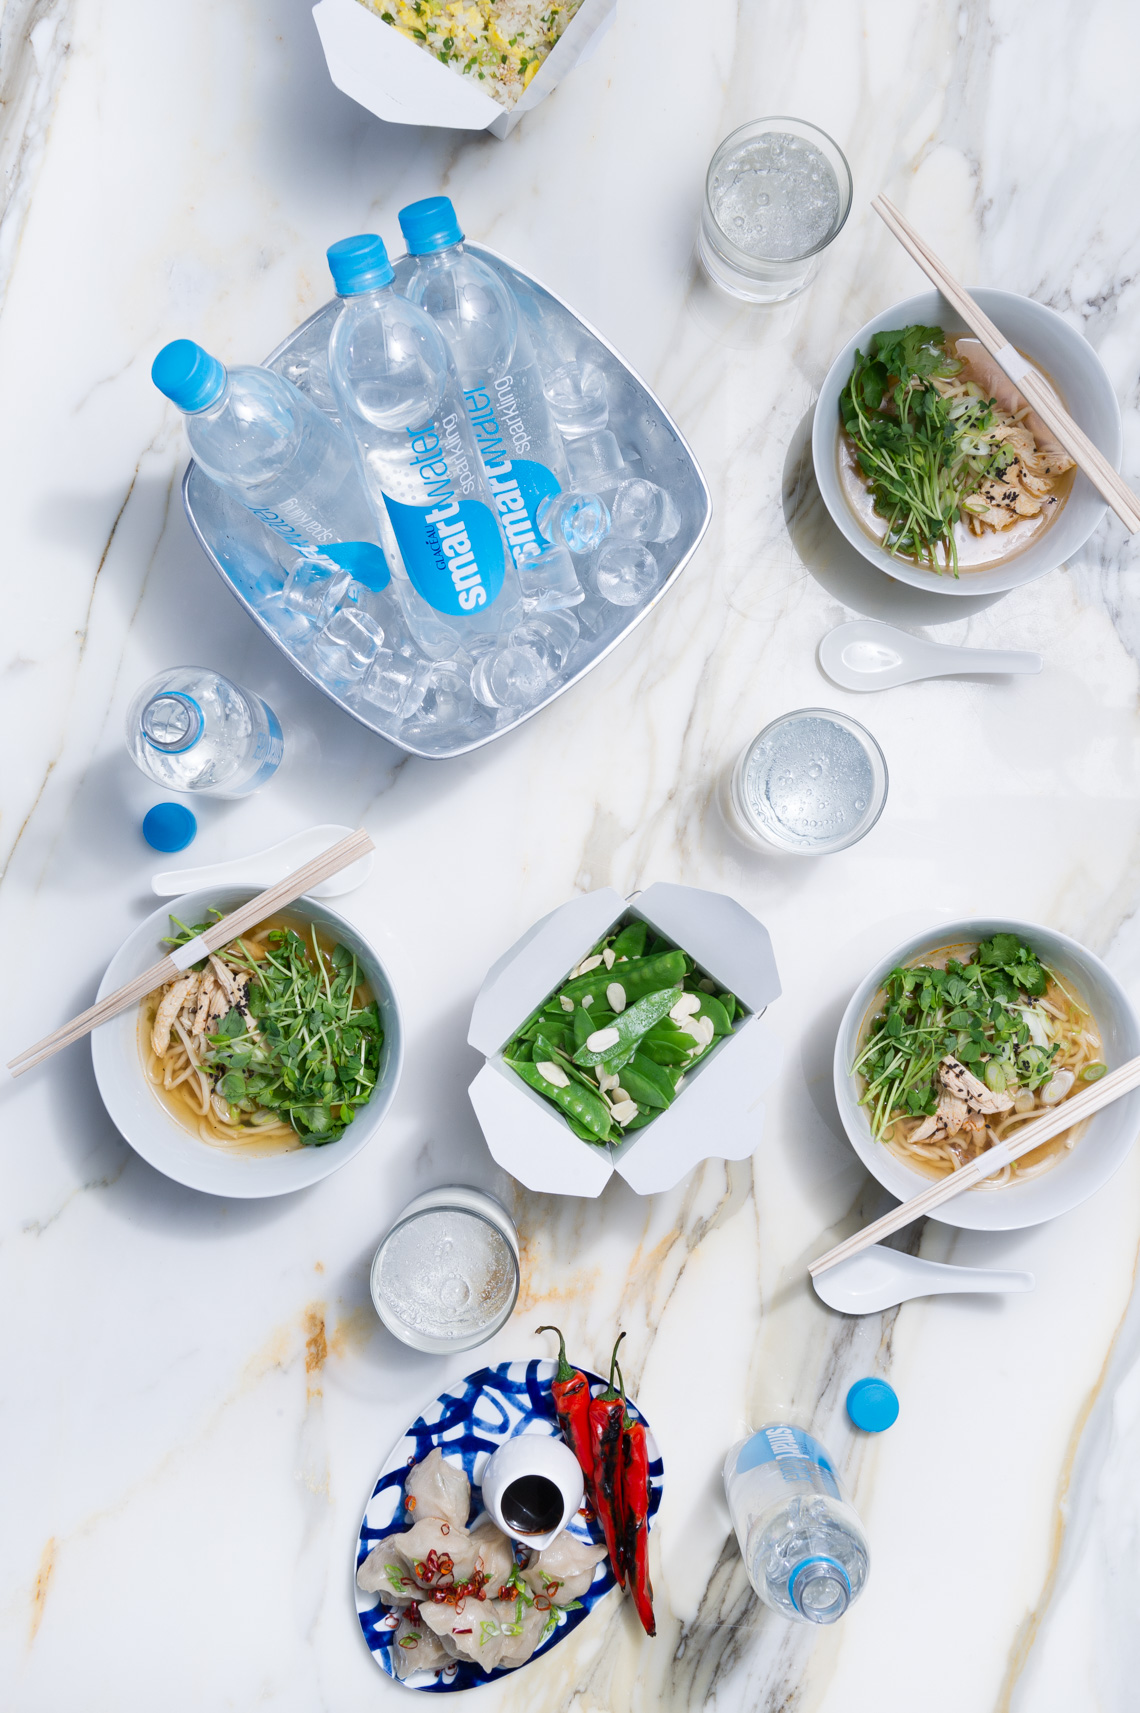 Photo by Morgan Ione Yeager, commerical photography, advertising photography, NYC food Photographer, Bon Appetit, Epicurious, Smart Water, Conde Nast, tablescape